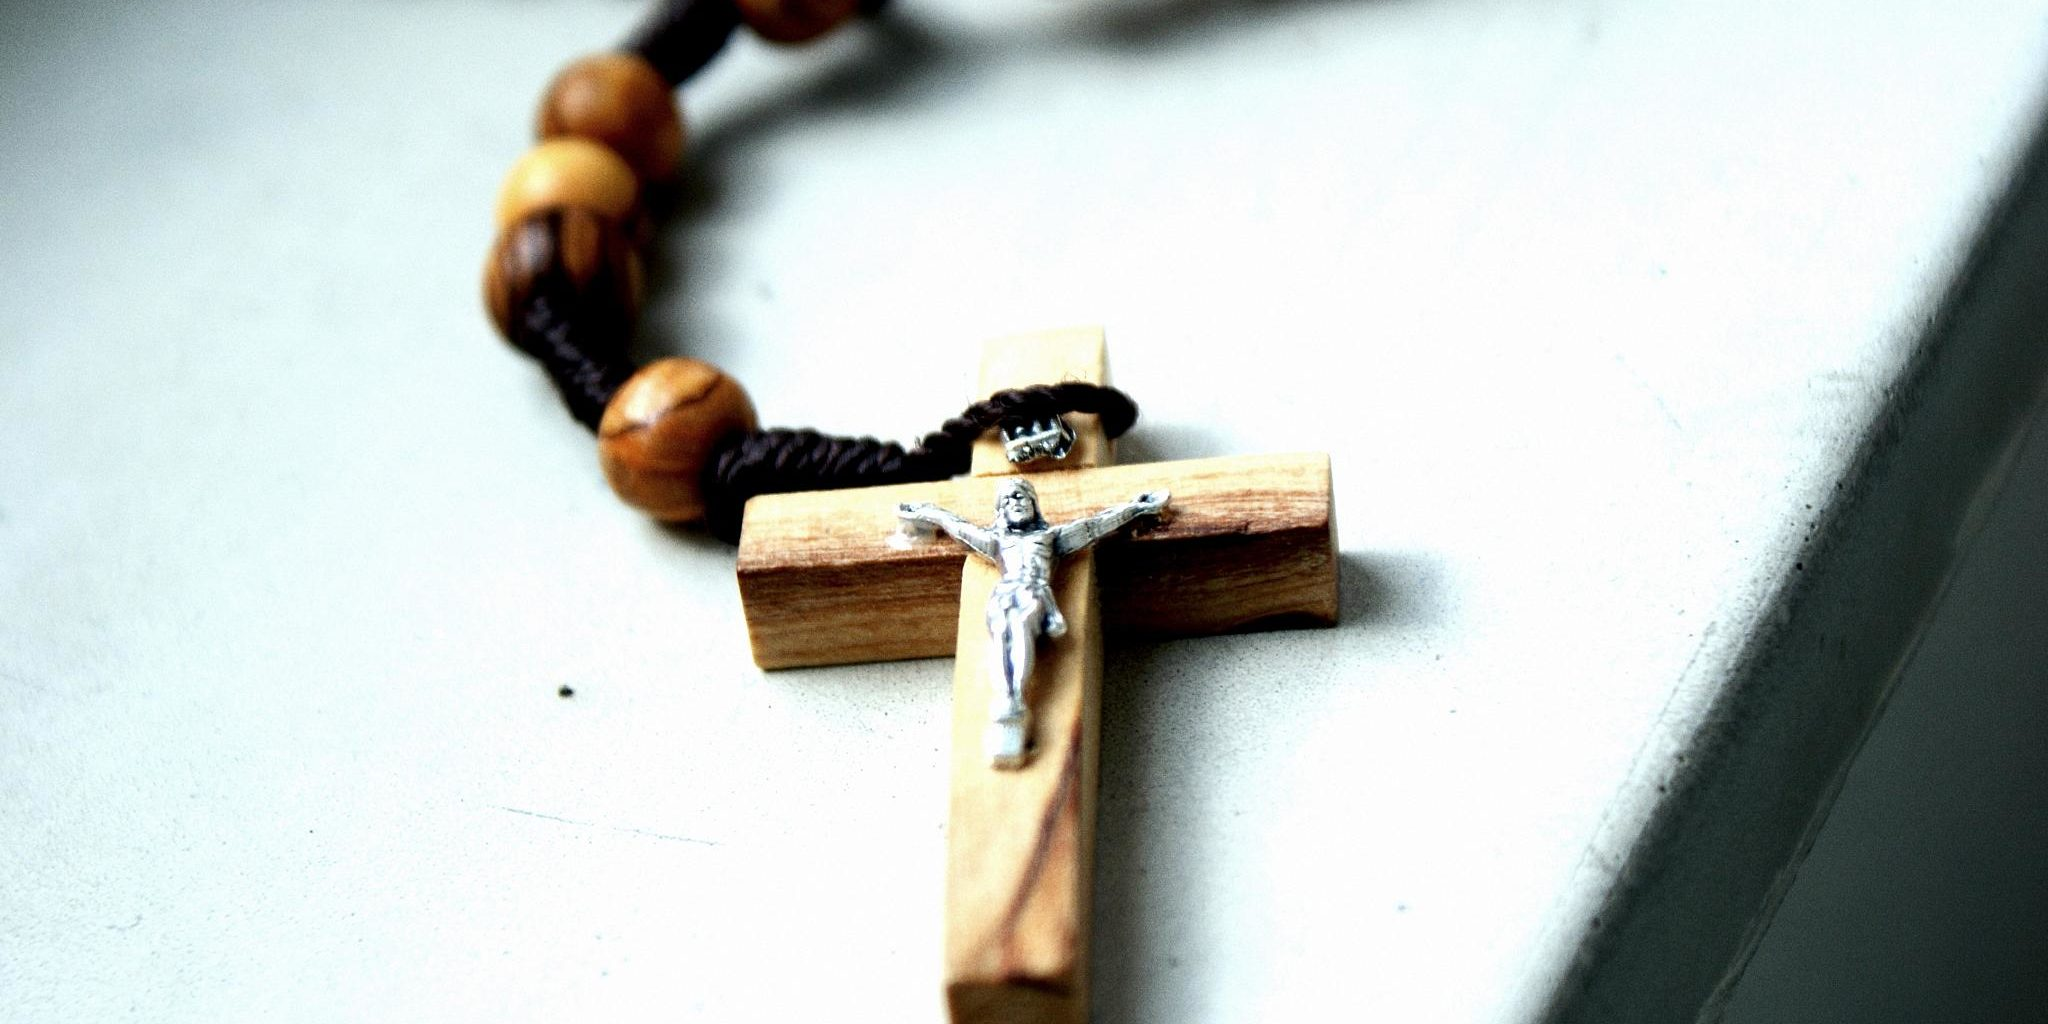 image of a wooden rosary with a wooden crucifix